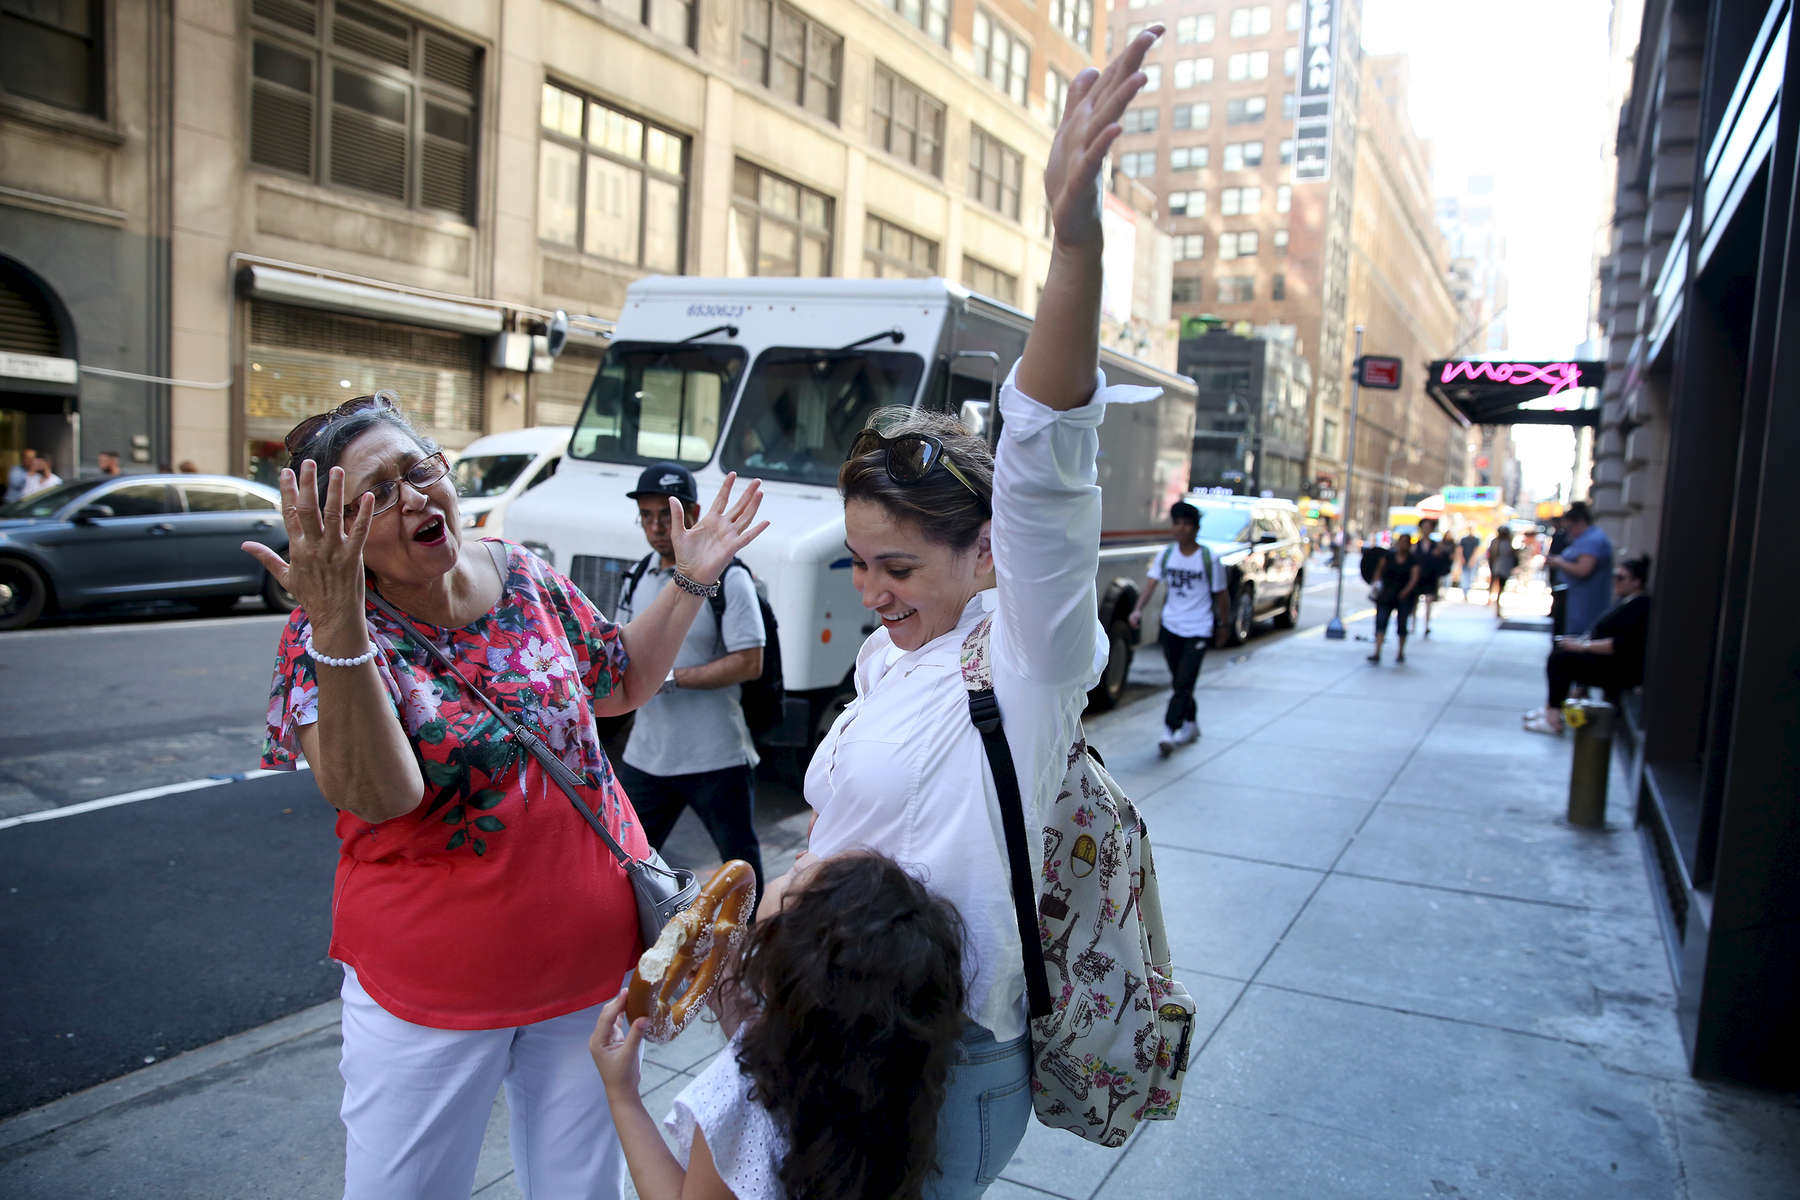 New York, NY--7/20/2018--  Tete started singing Frank Sinatra's 'New York, New York' and she and Patricia threw their arms in the air for Camila as they got to the finale. They had come to New York to renew Patricia's passport at the Honduran Consulate, which took hours but Patricia was determined to show Camila Times Square and give her a taste of the Big Apple before they left.